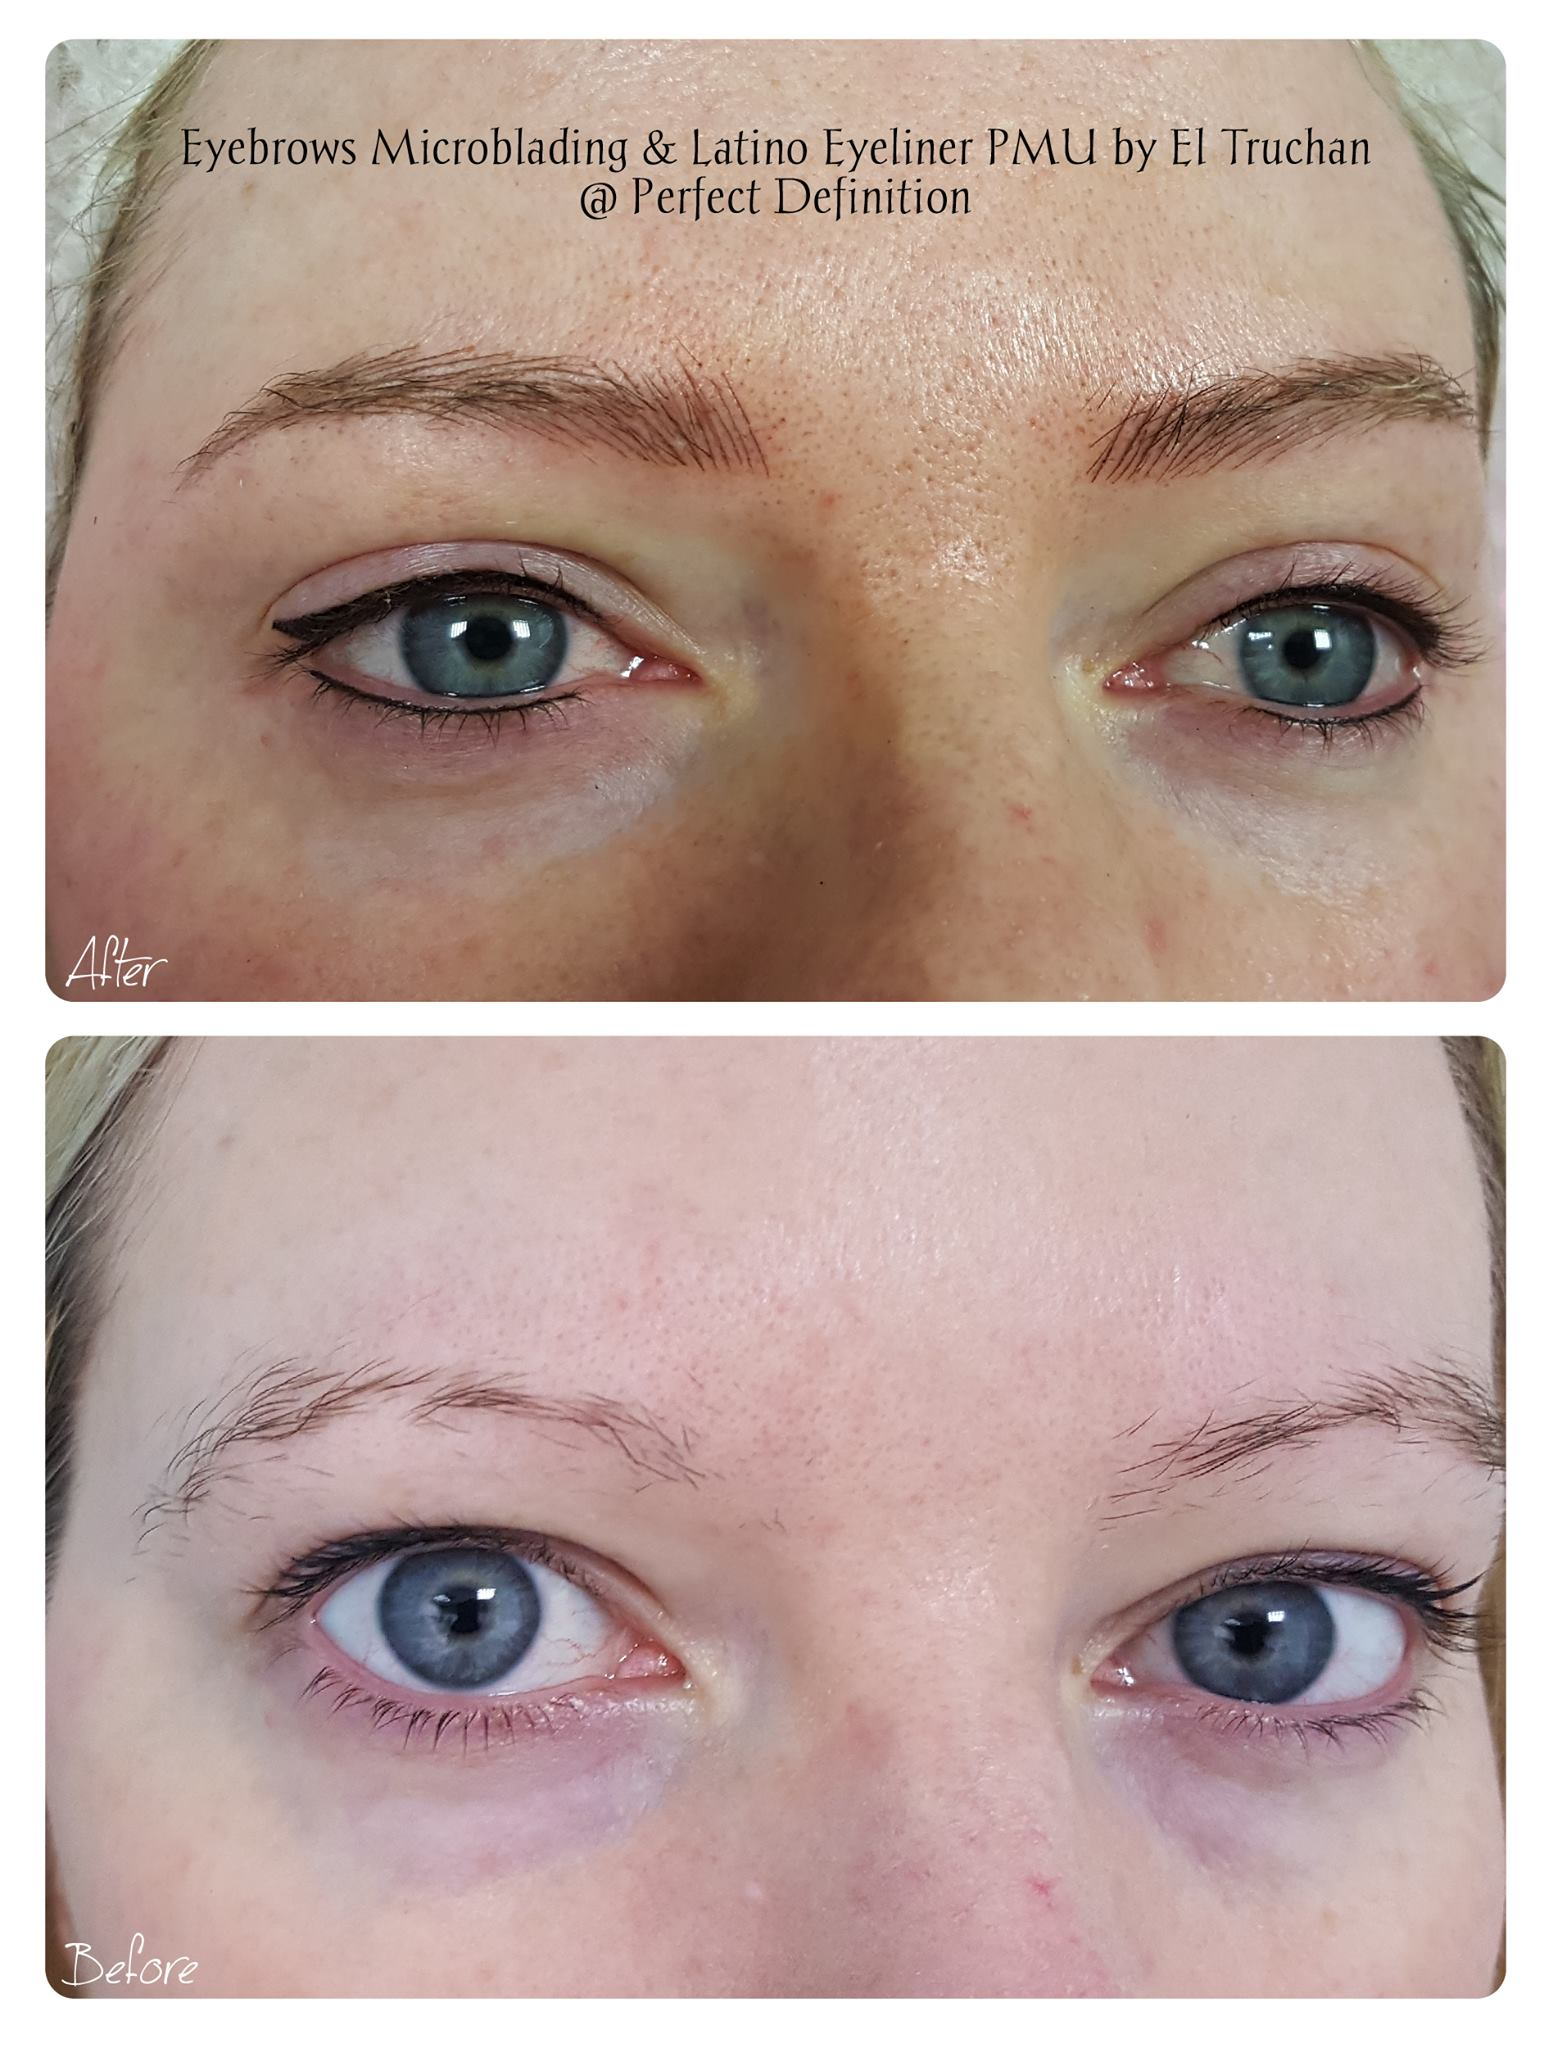 Eyebrows Microblading and Latino Eyeliner